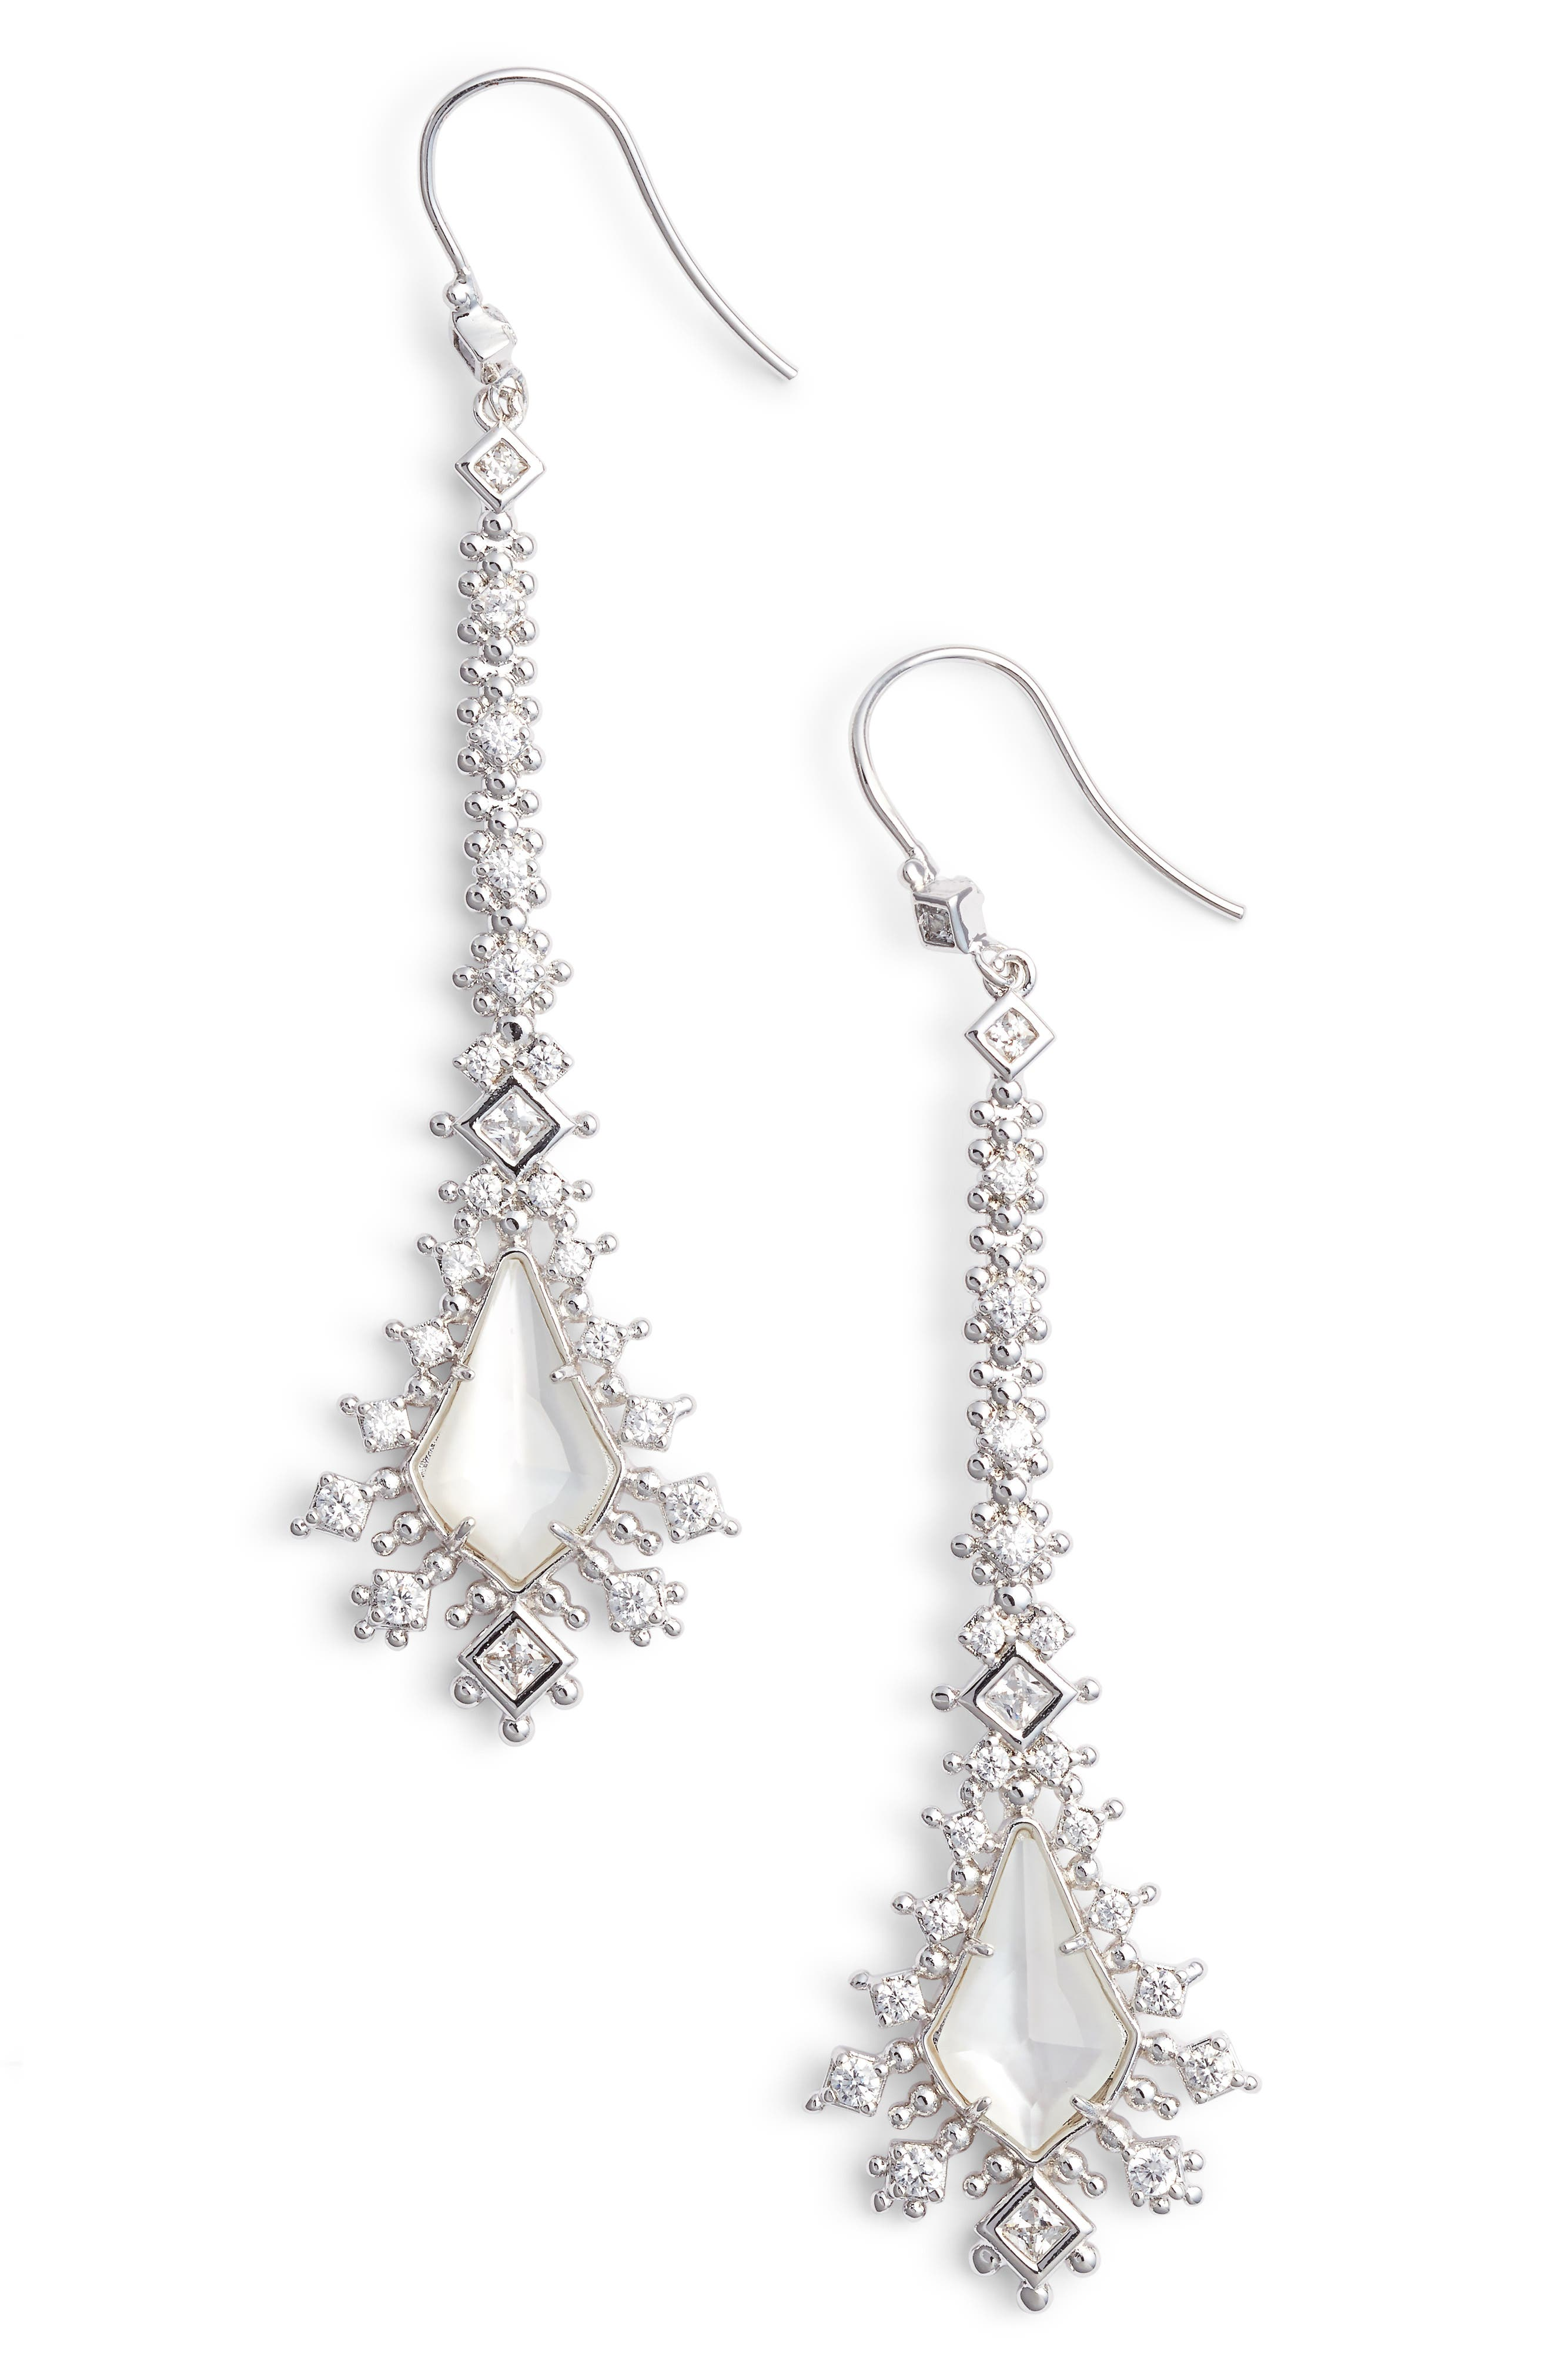 Reimer Mother of Pearl Drop Earrings,                         Main,                         color, Silver